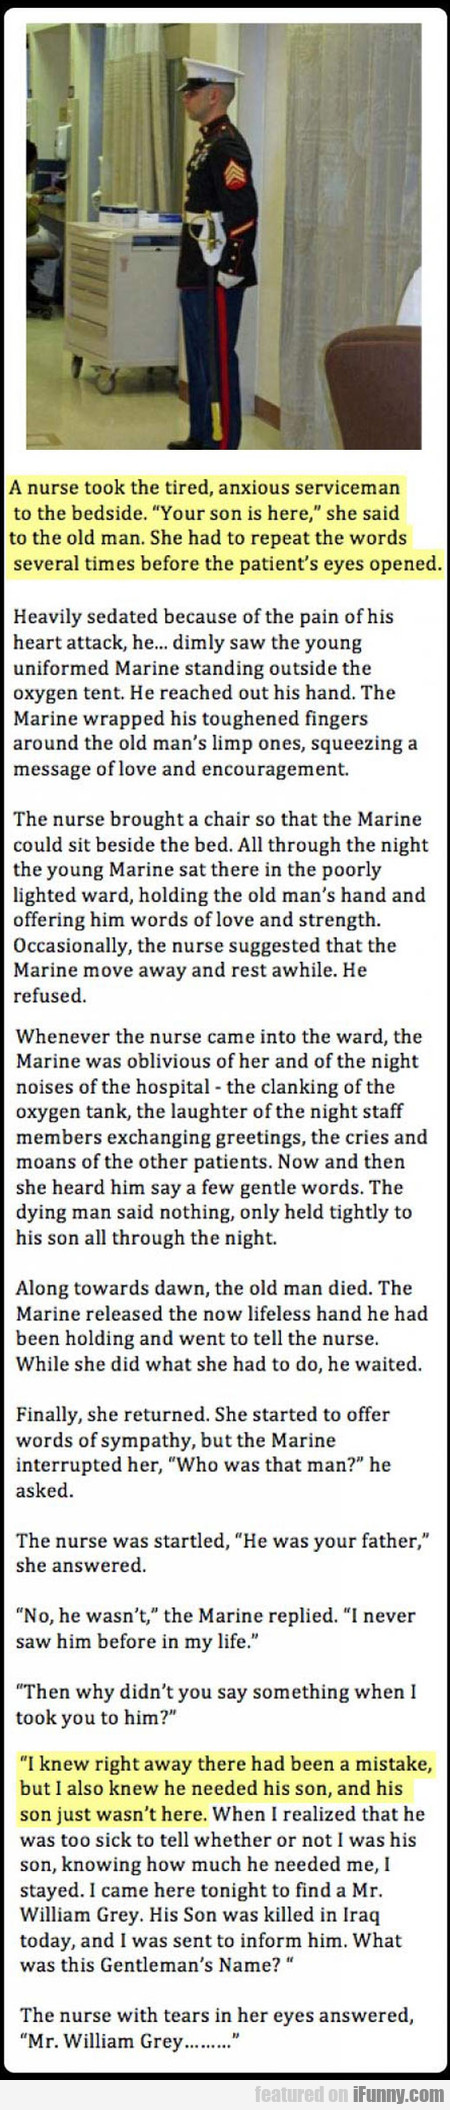 a nurse took the tired serviceman to the bedside